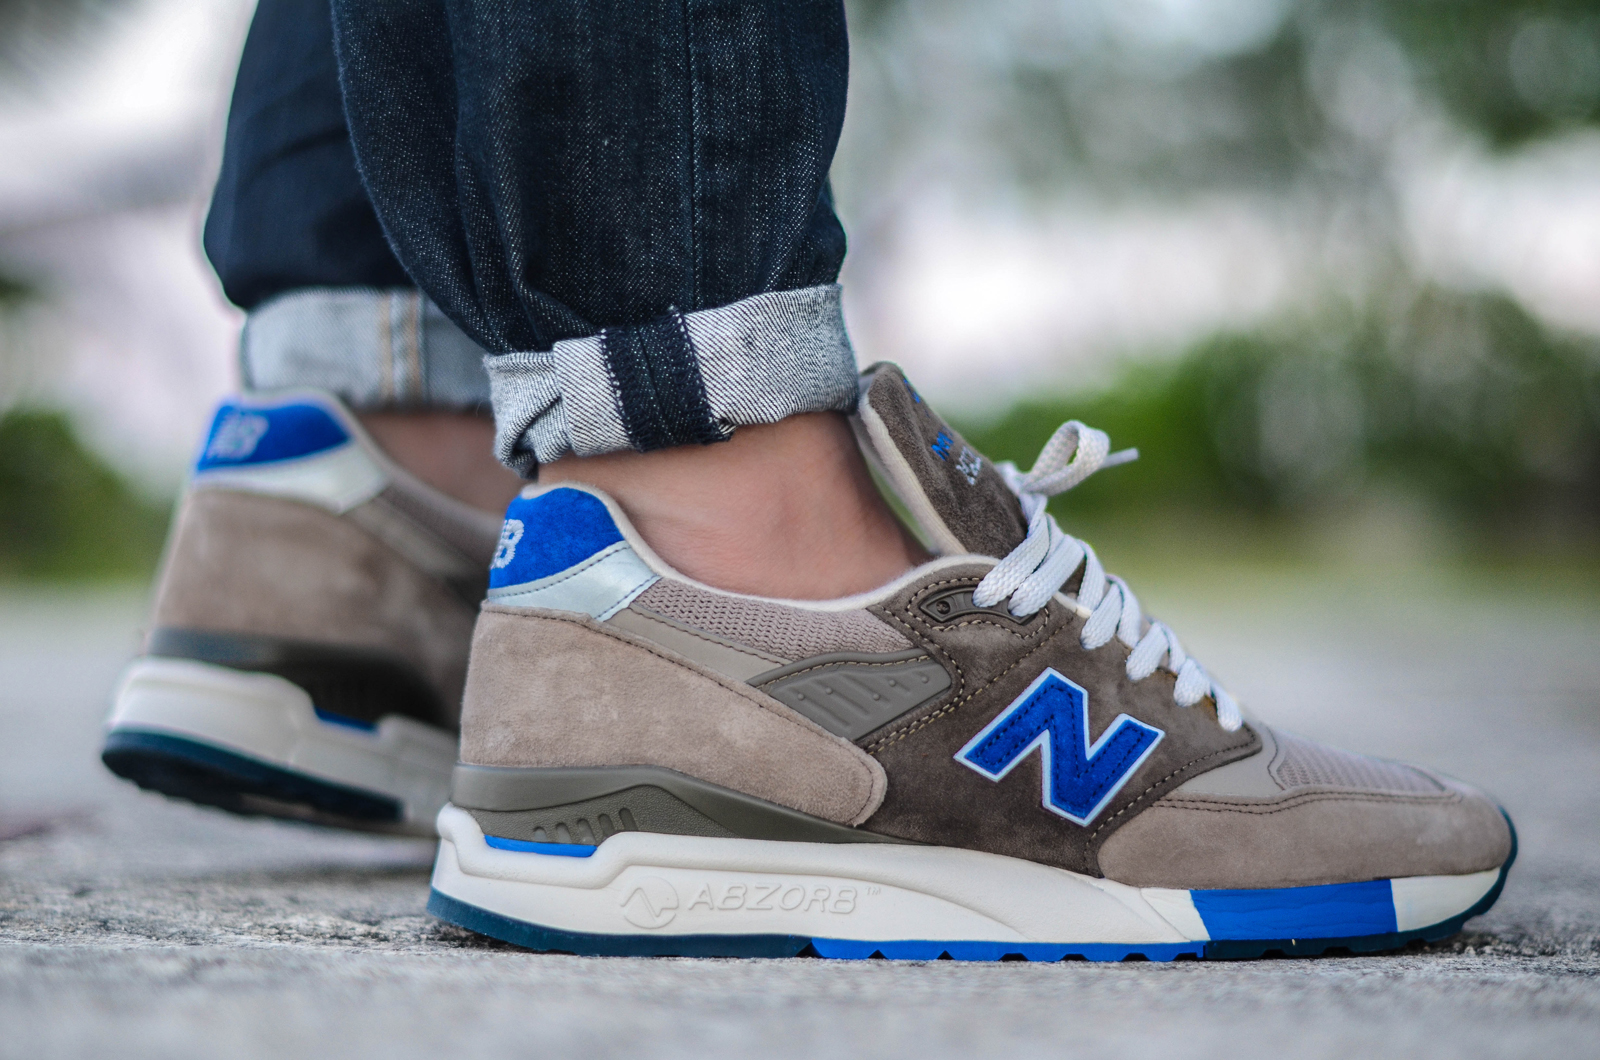 new balance pebble blue